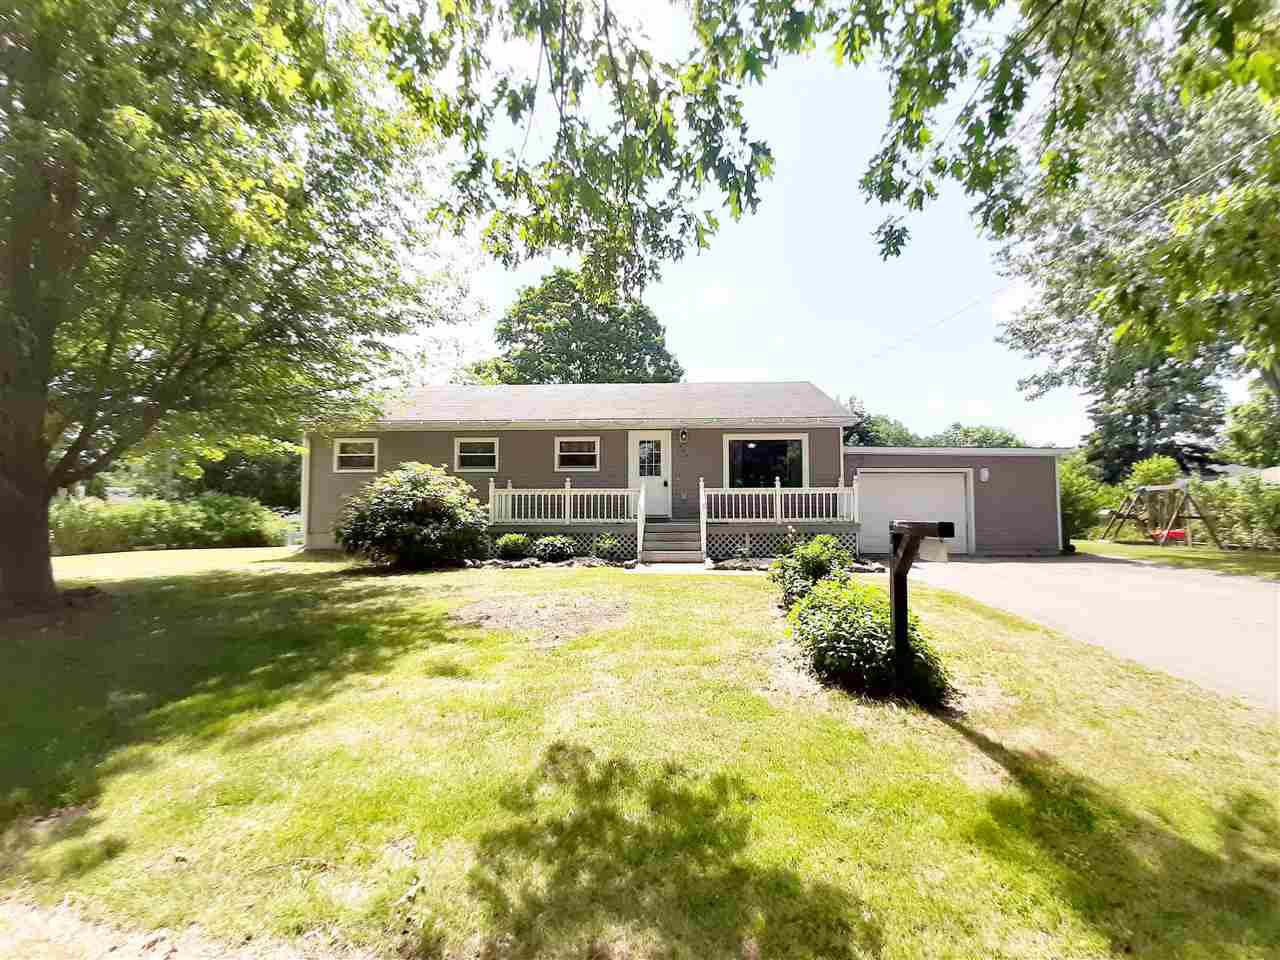 Main Photo: 544 Belmont Street in Kingston: 404-Kings County Residential for sale (Annapolis Valley)  : MLS®# 202011315